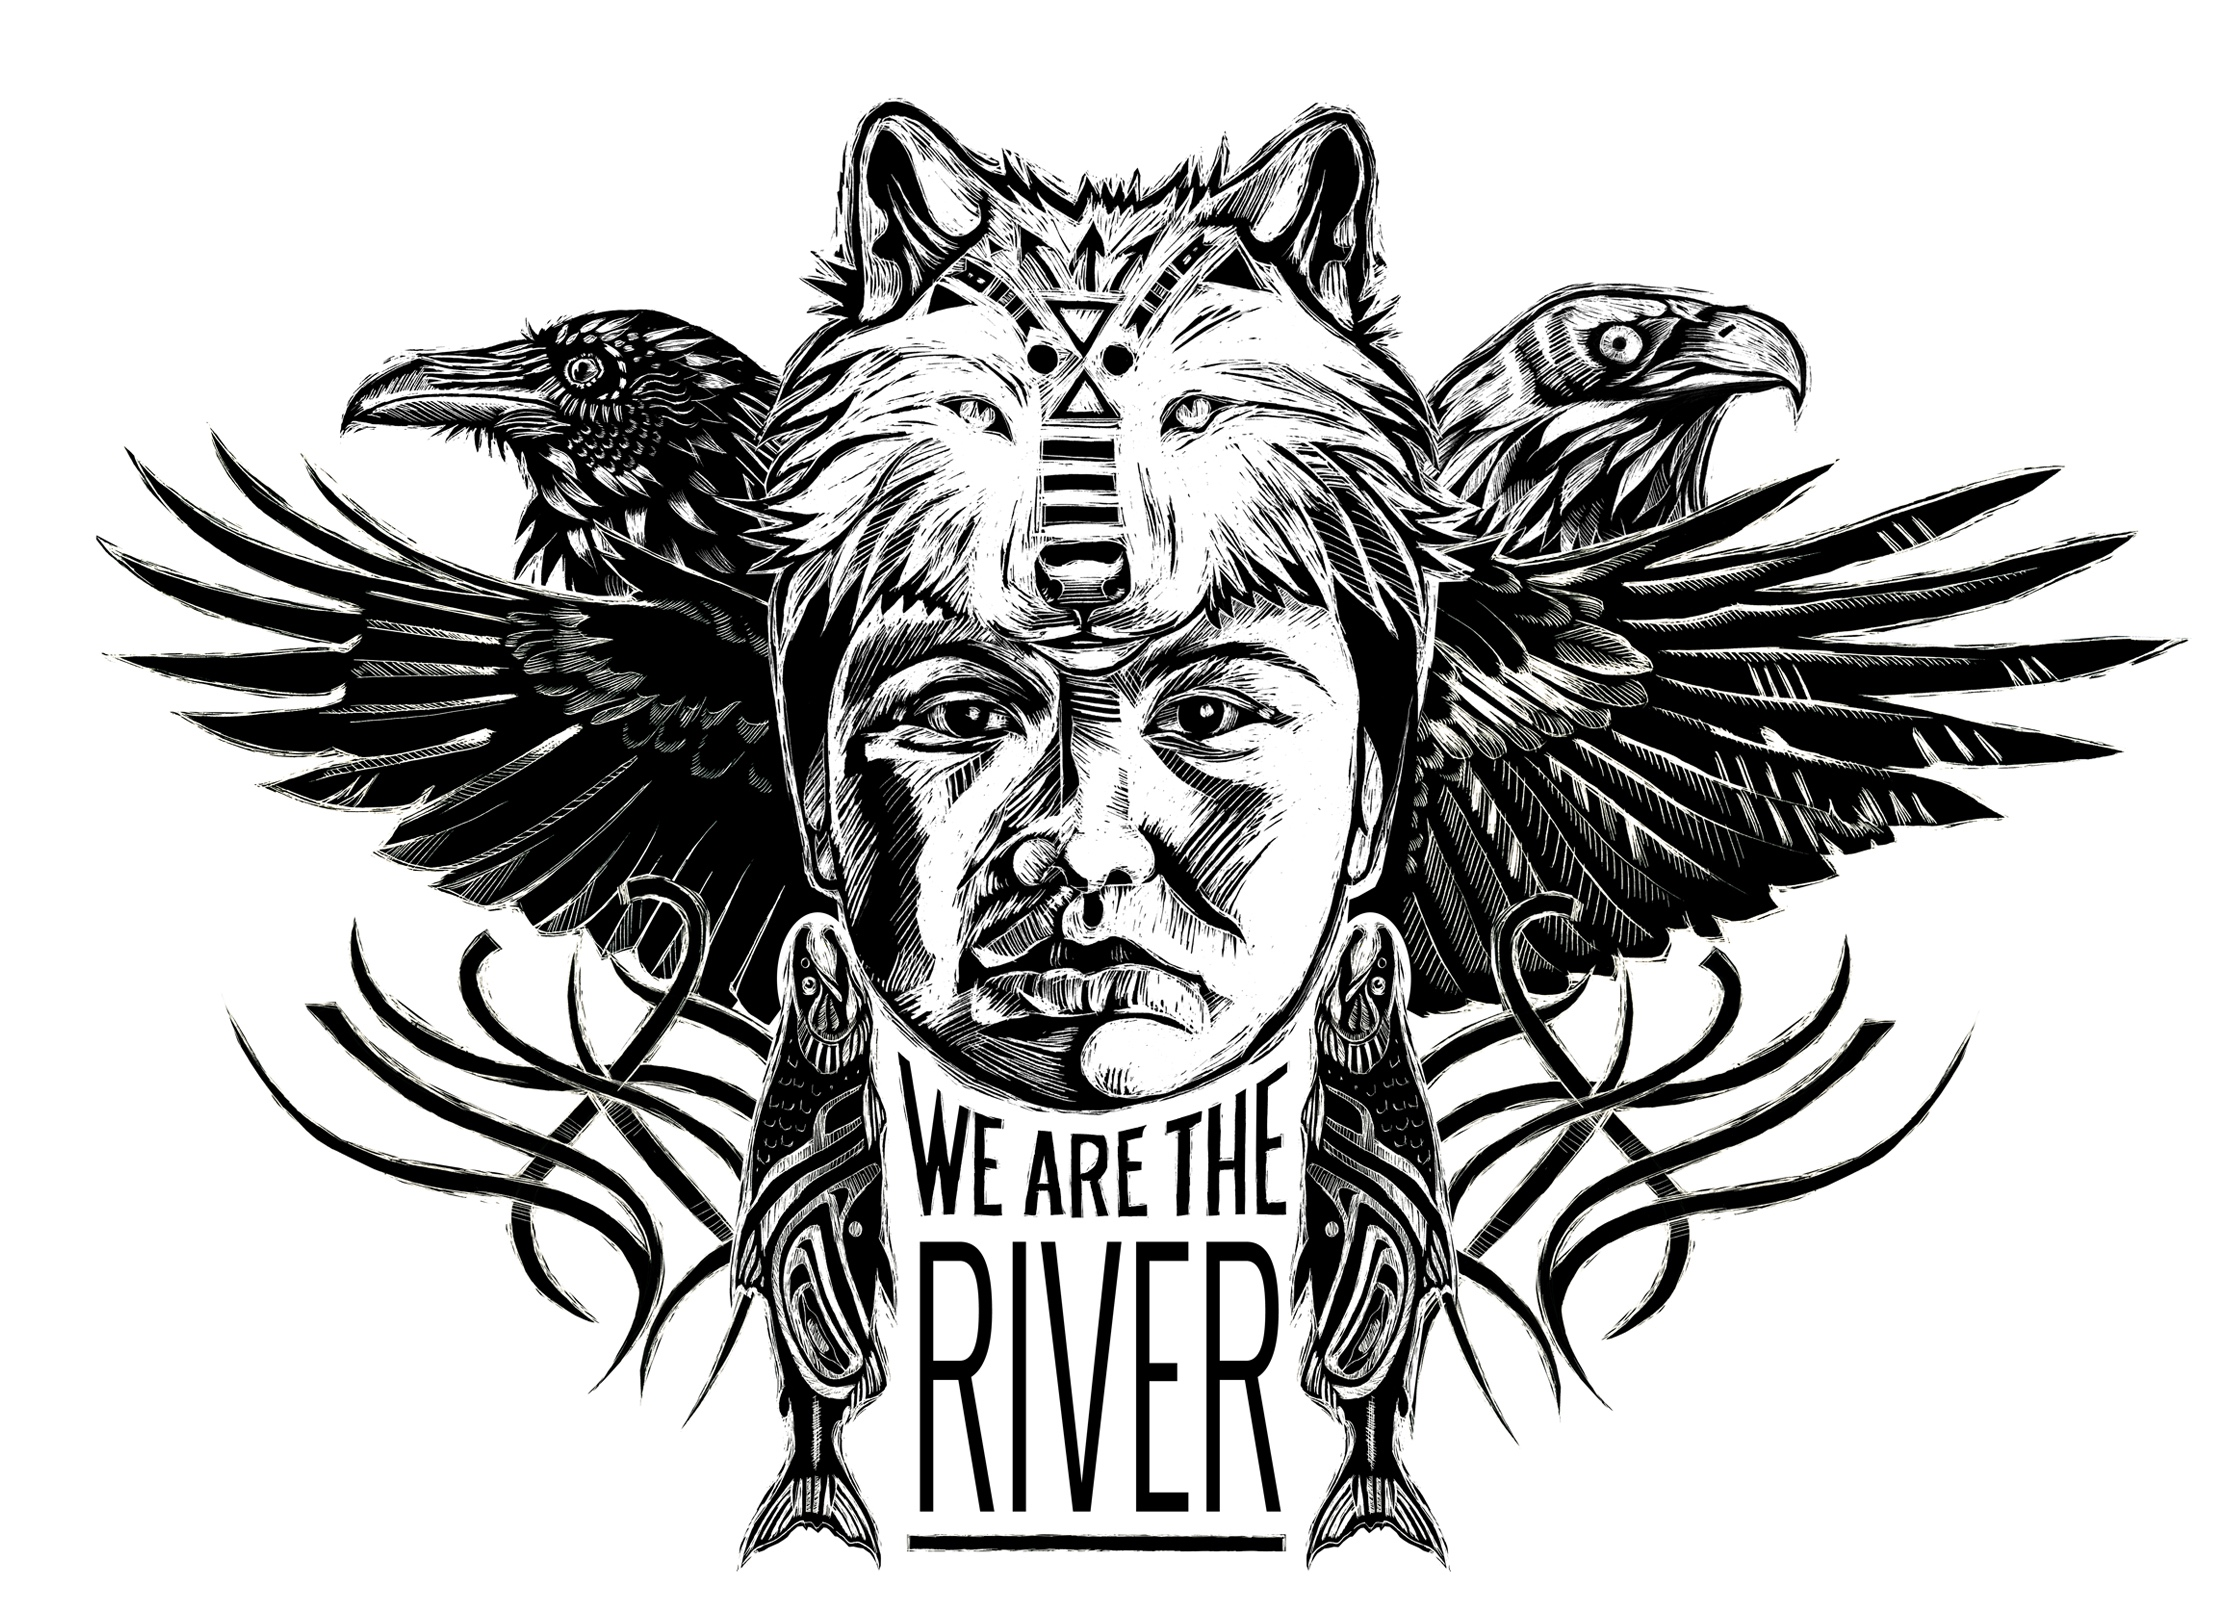 We Are The River